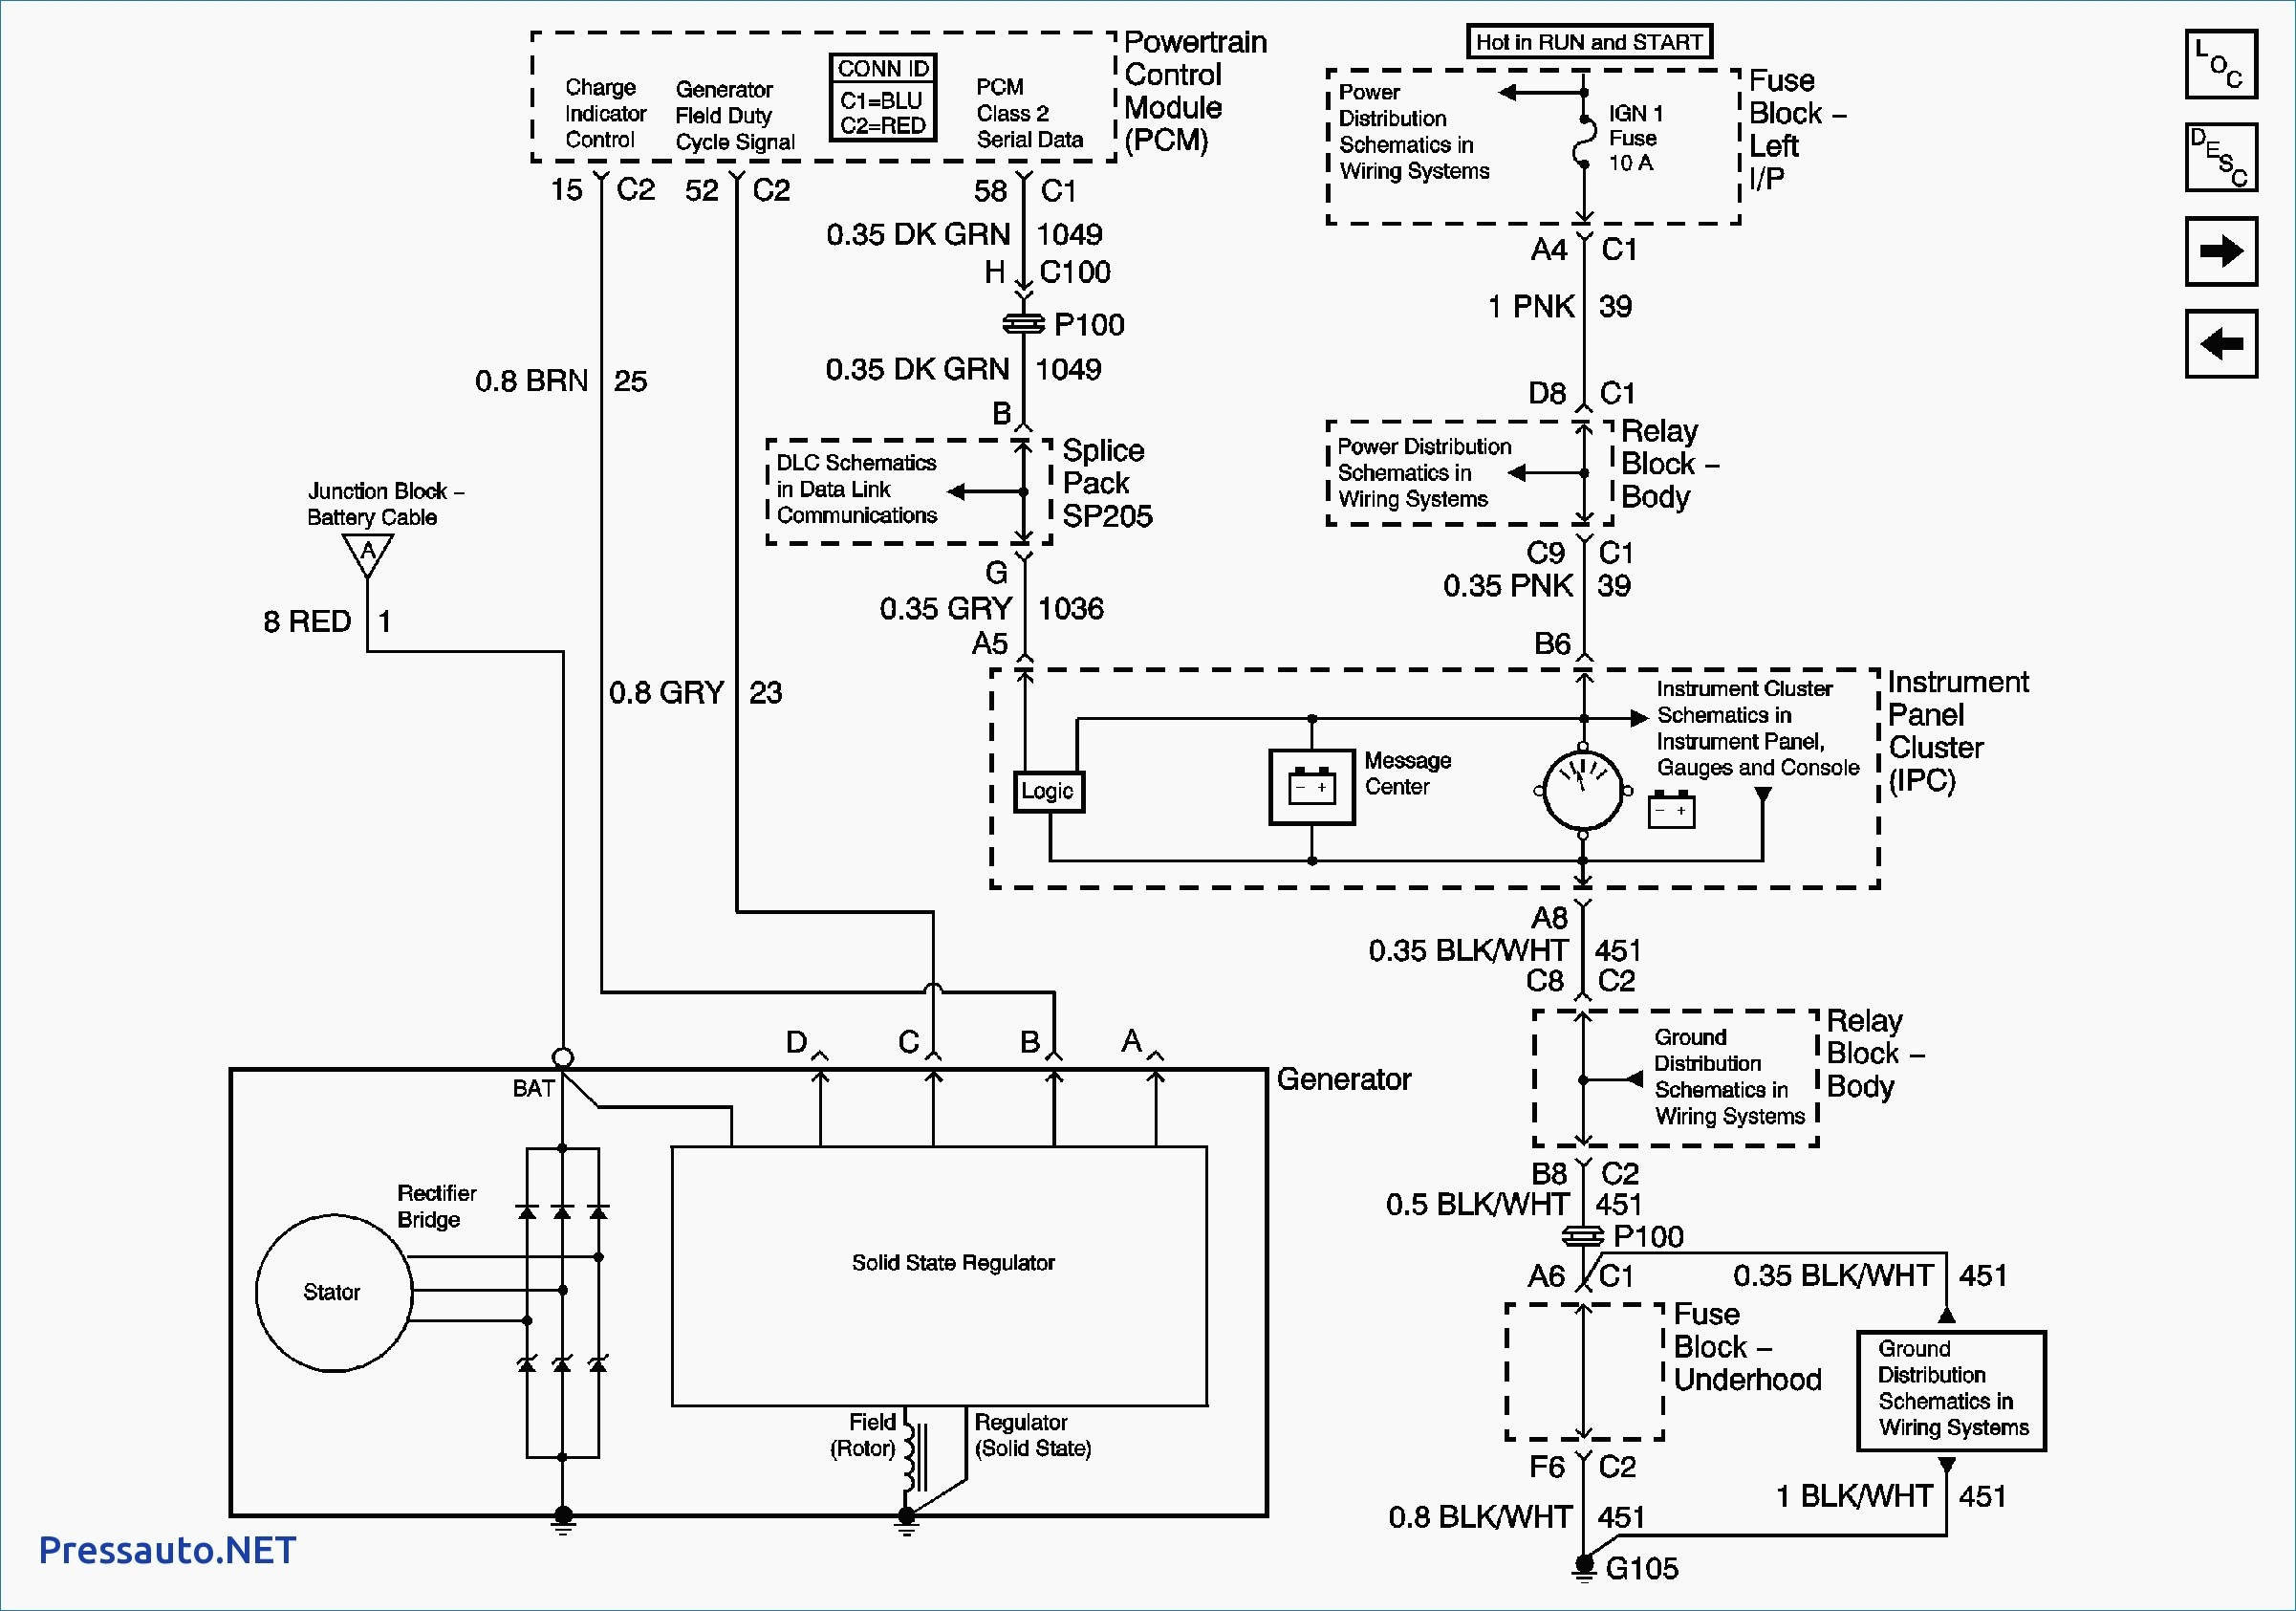 cycle electric generator wiring diagram Download-Wiring Diagram Starter Generator Valid Delco Remy Starter Wiring Diagram 20-a